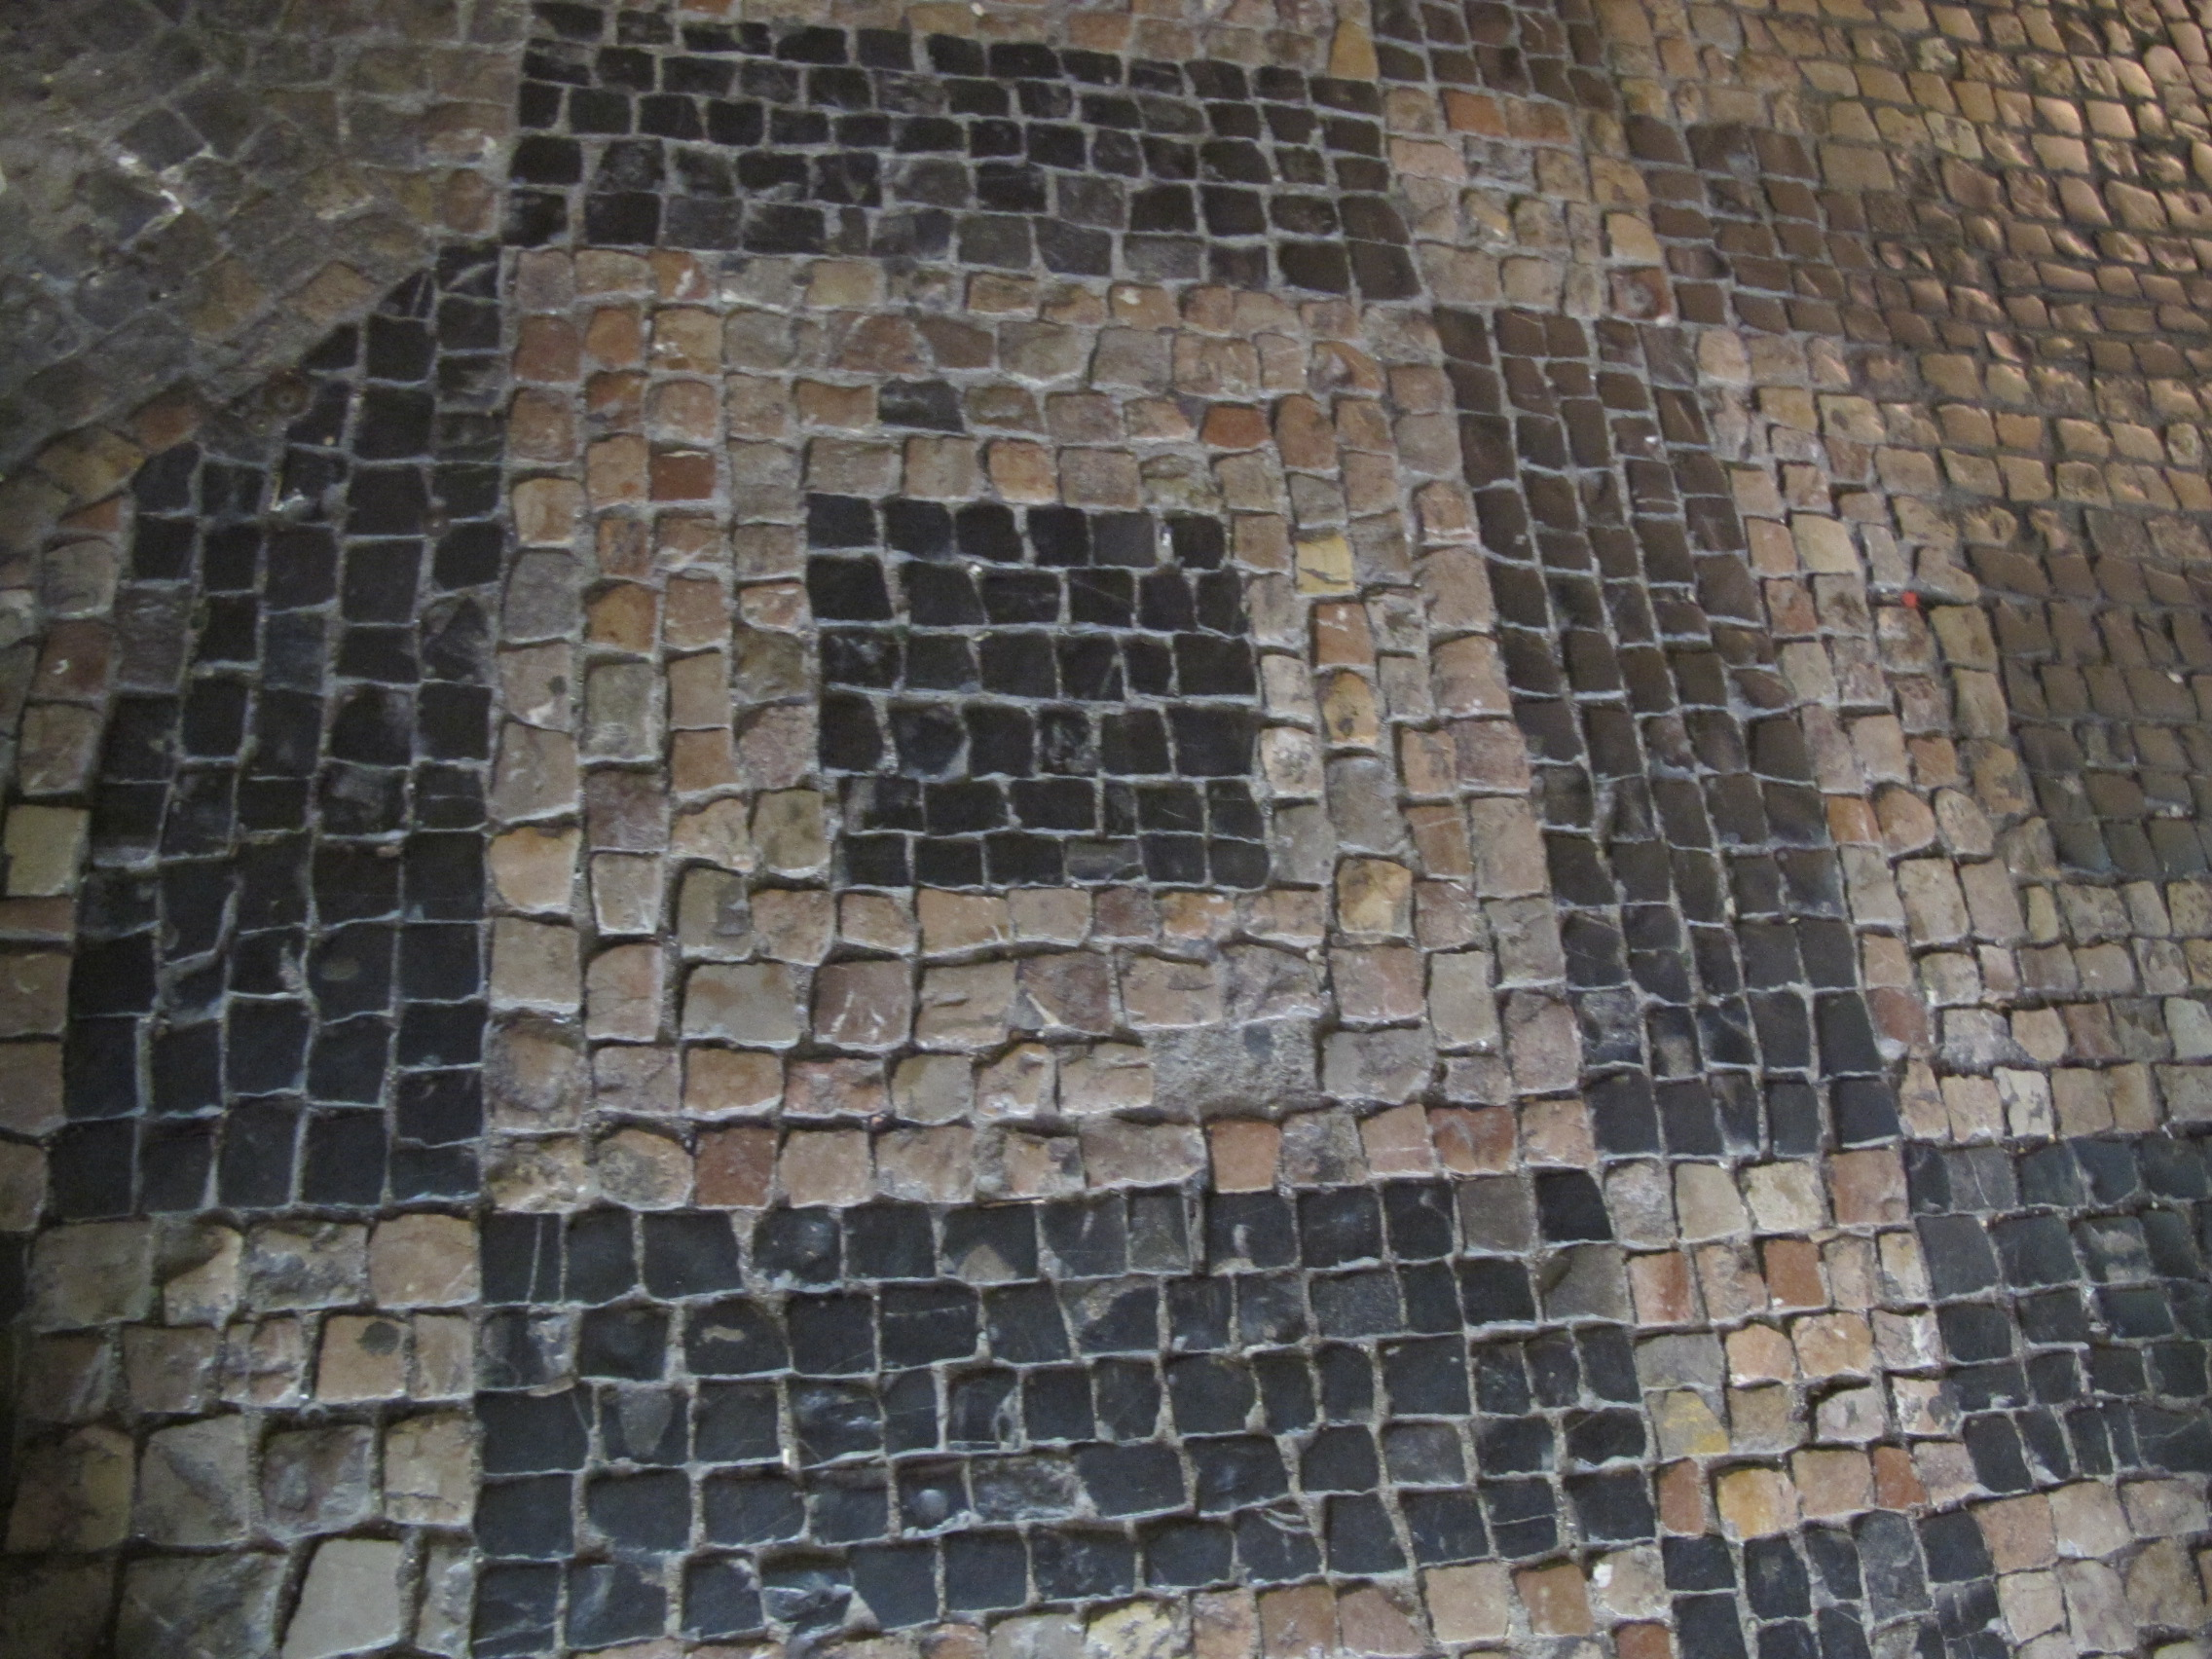 Parts of Jewish tombstones to gradually disappear from Prague's cobbled streets | Radio Prague International